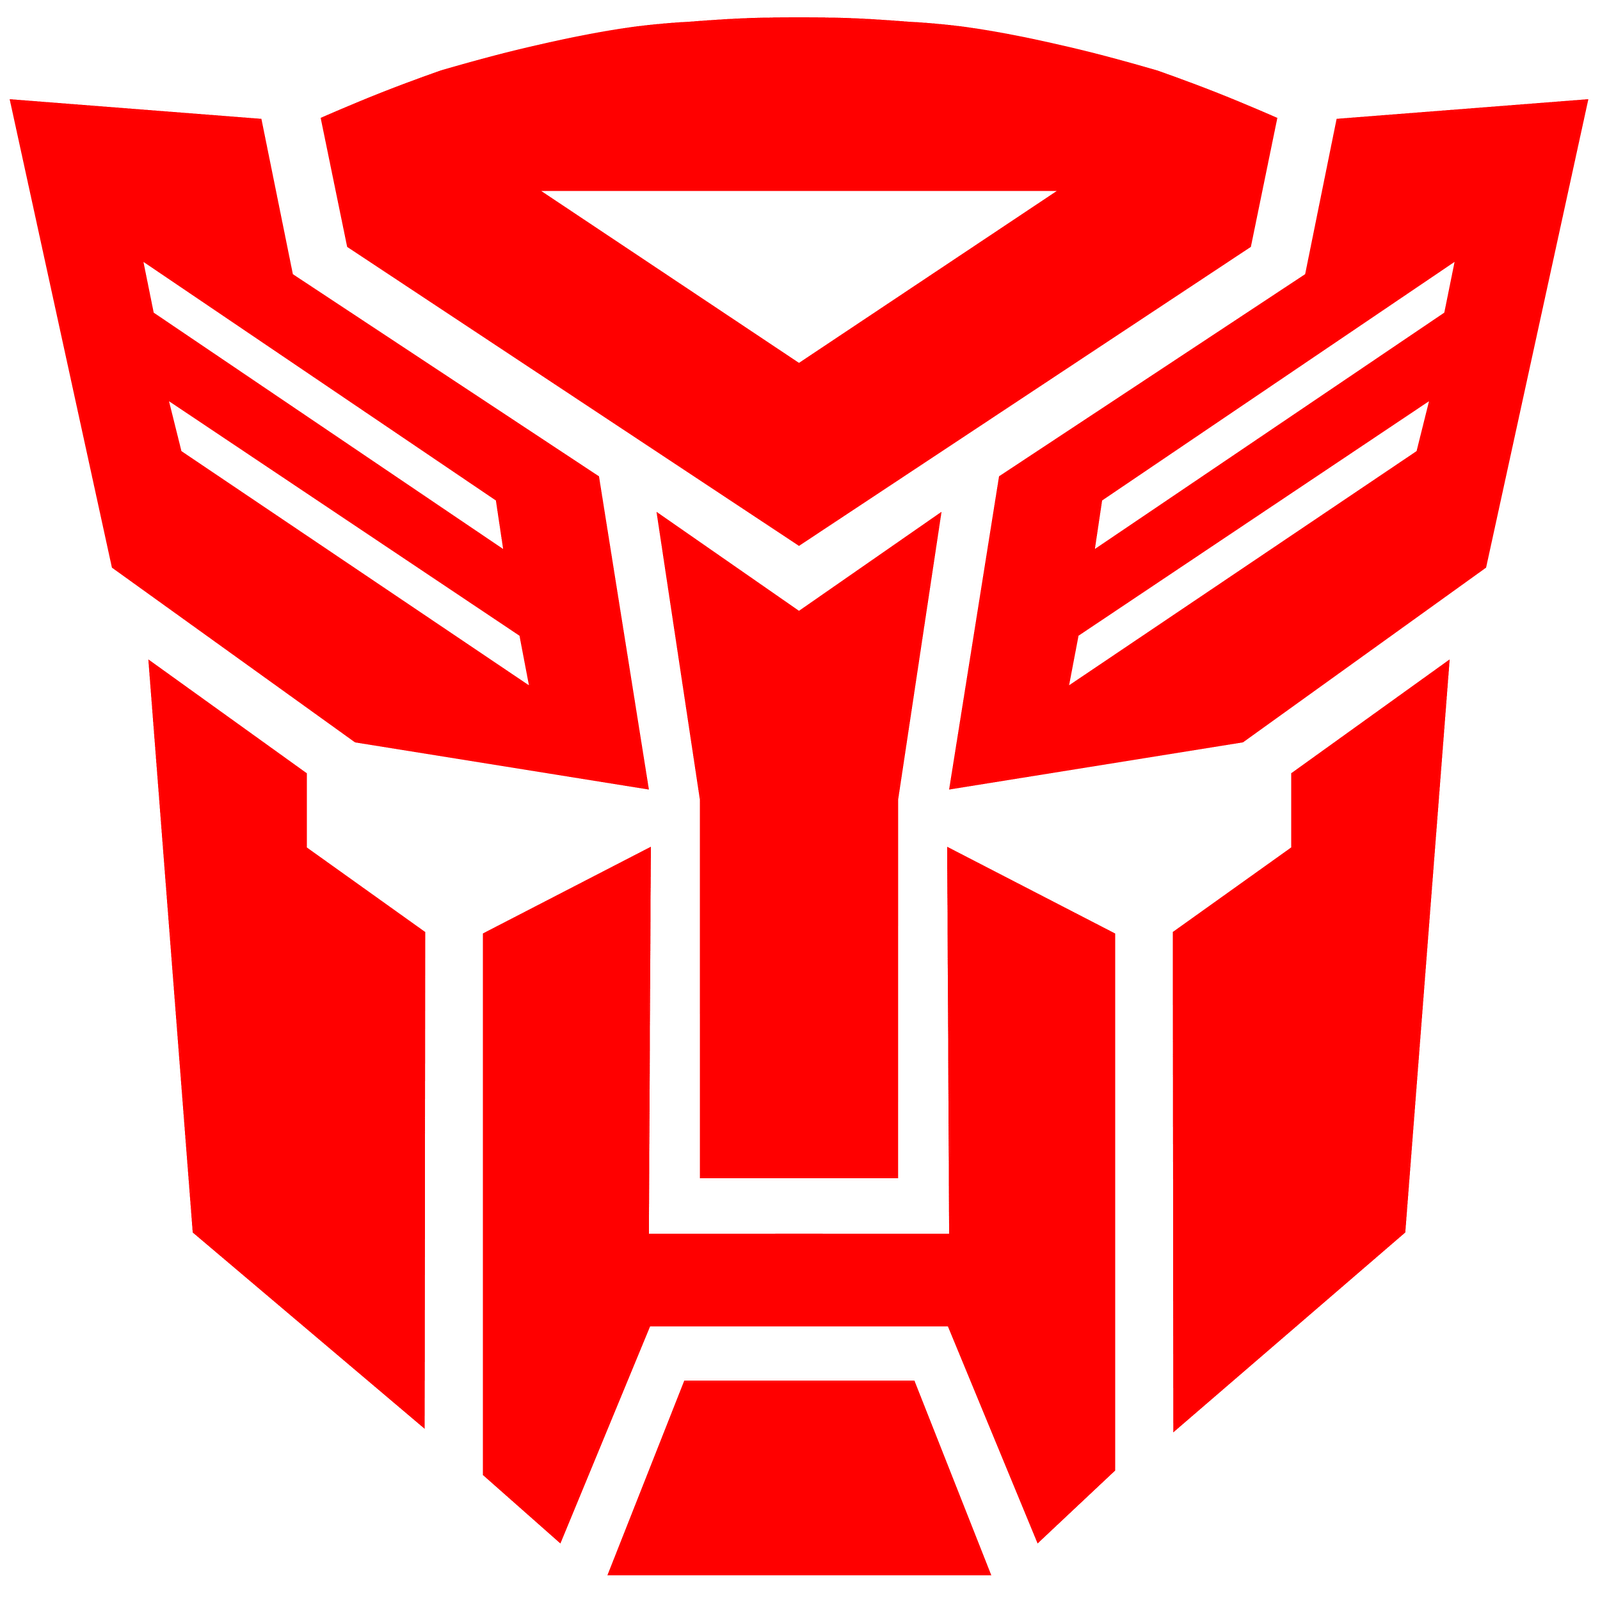 Autobot Symbol Wallpapers - Wallpaper Cave